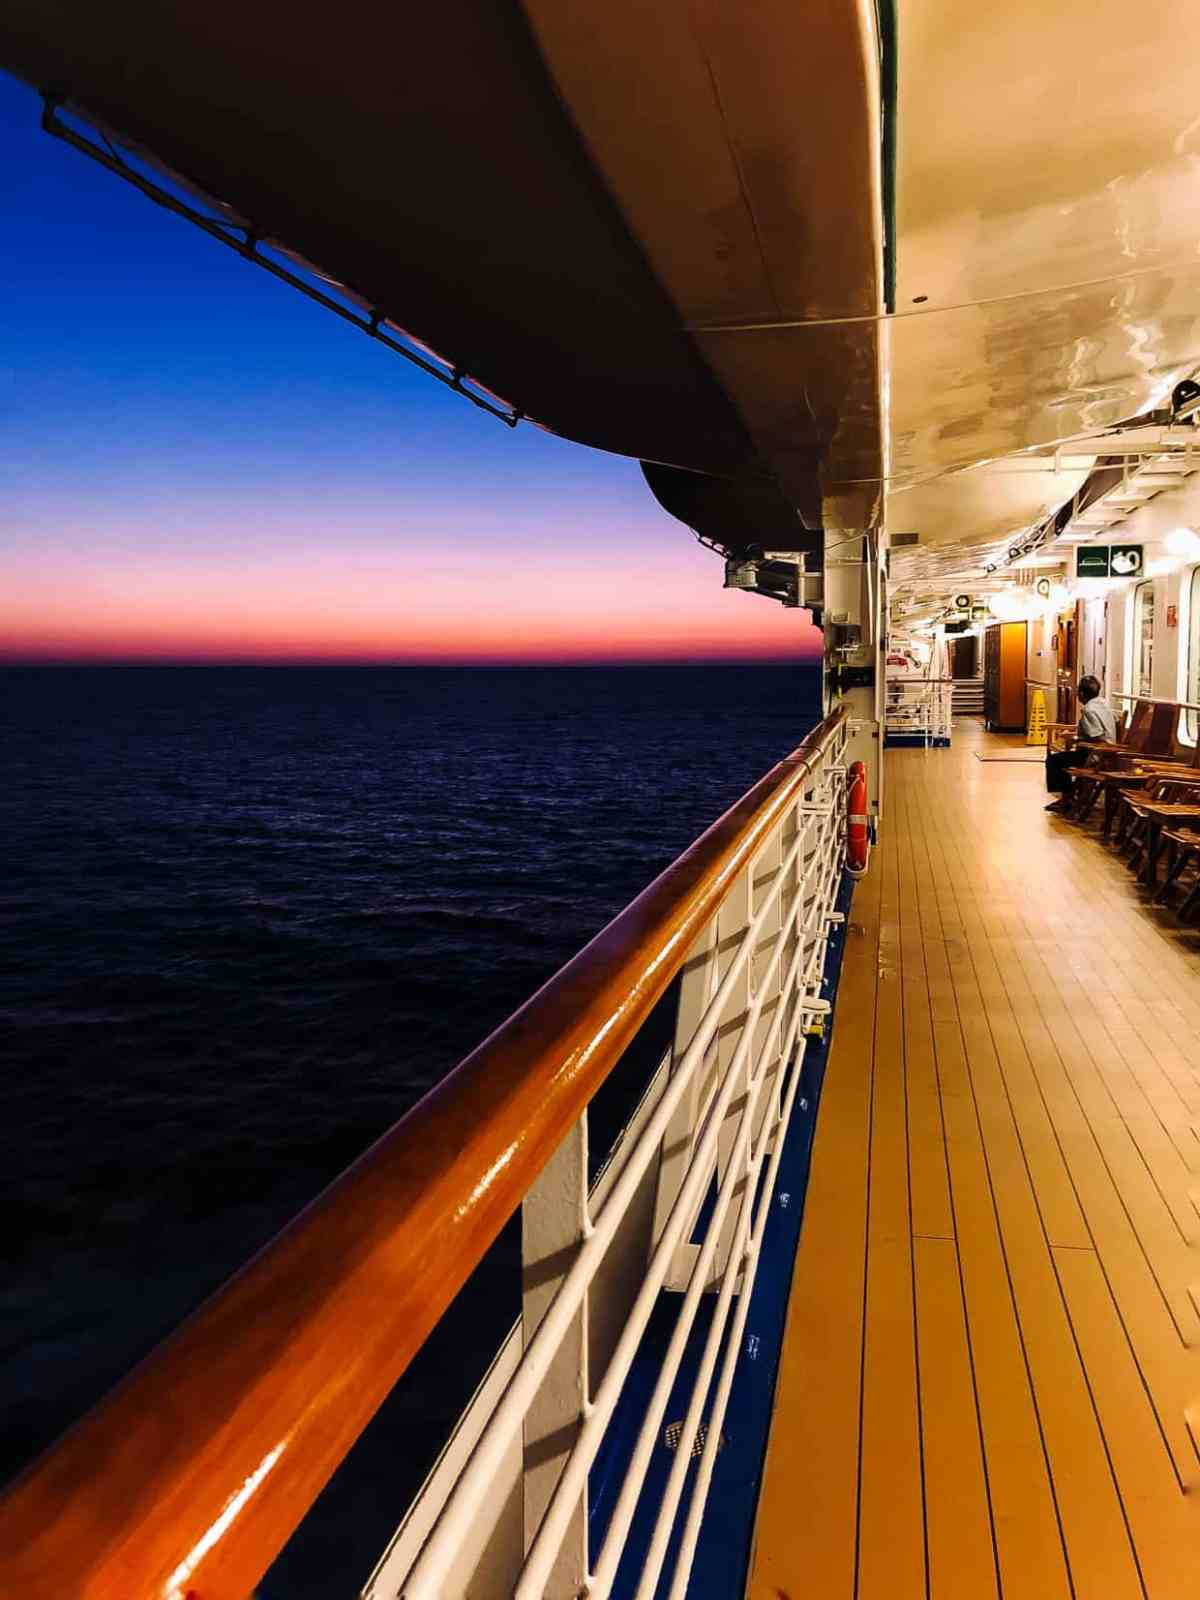 View from on board the Ruby Princess while cruising the Mexican Riviera.